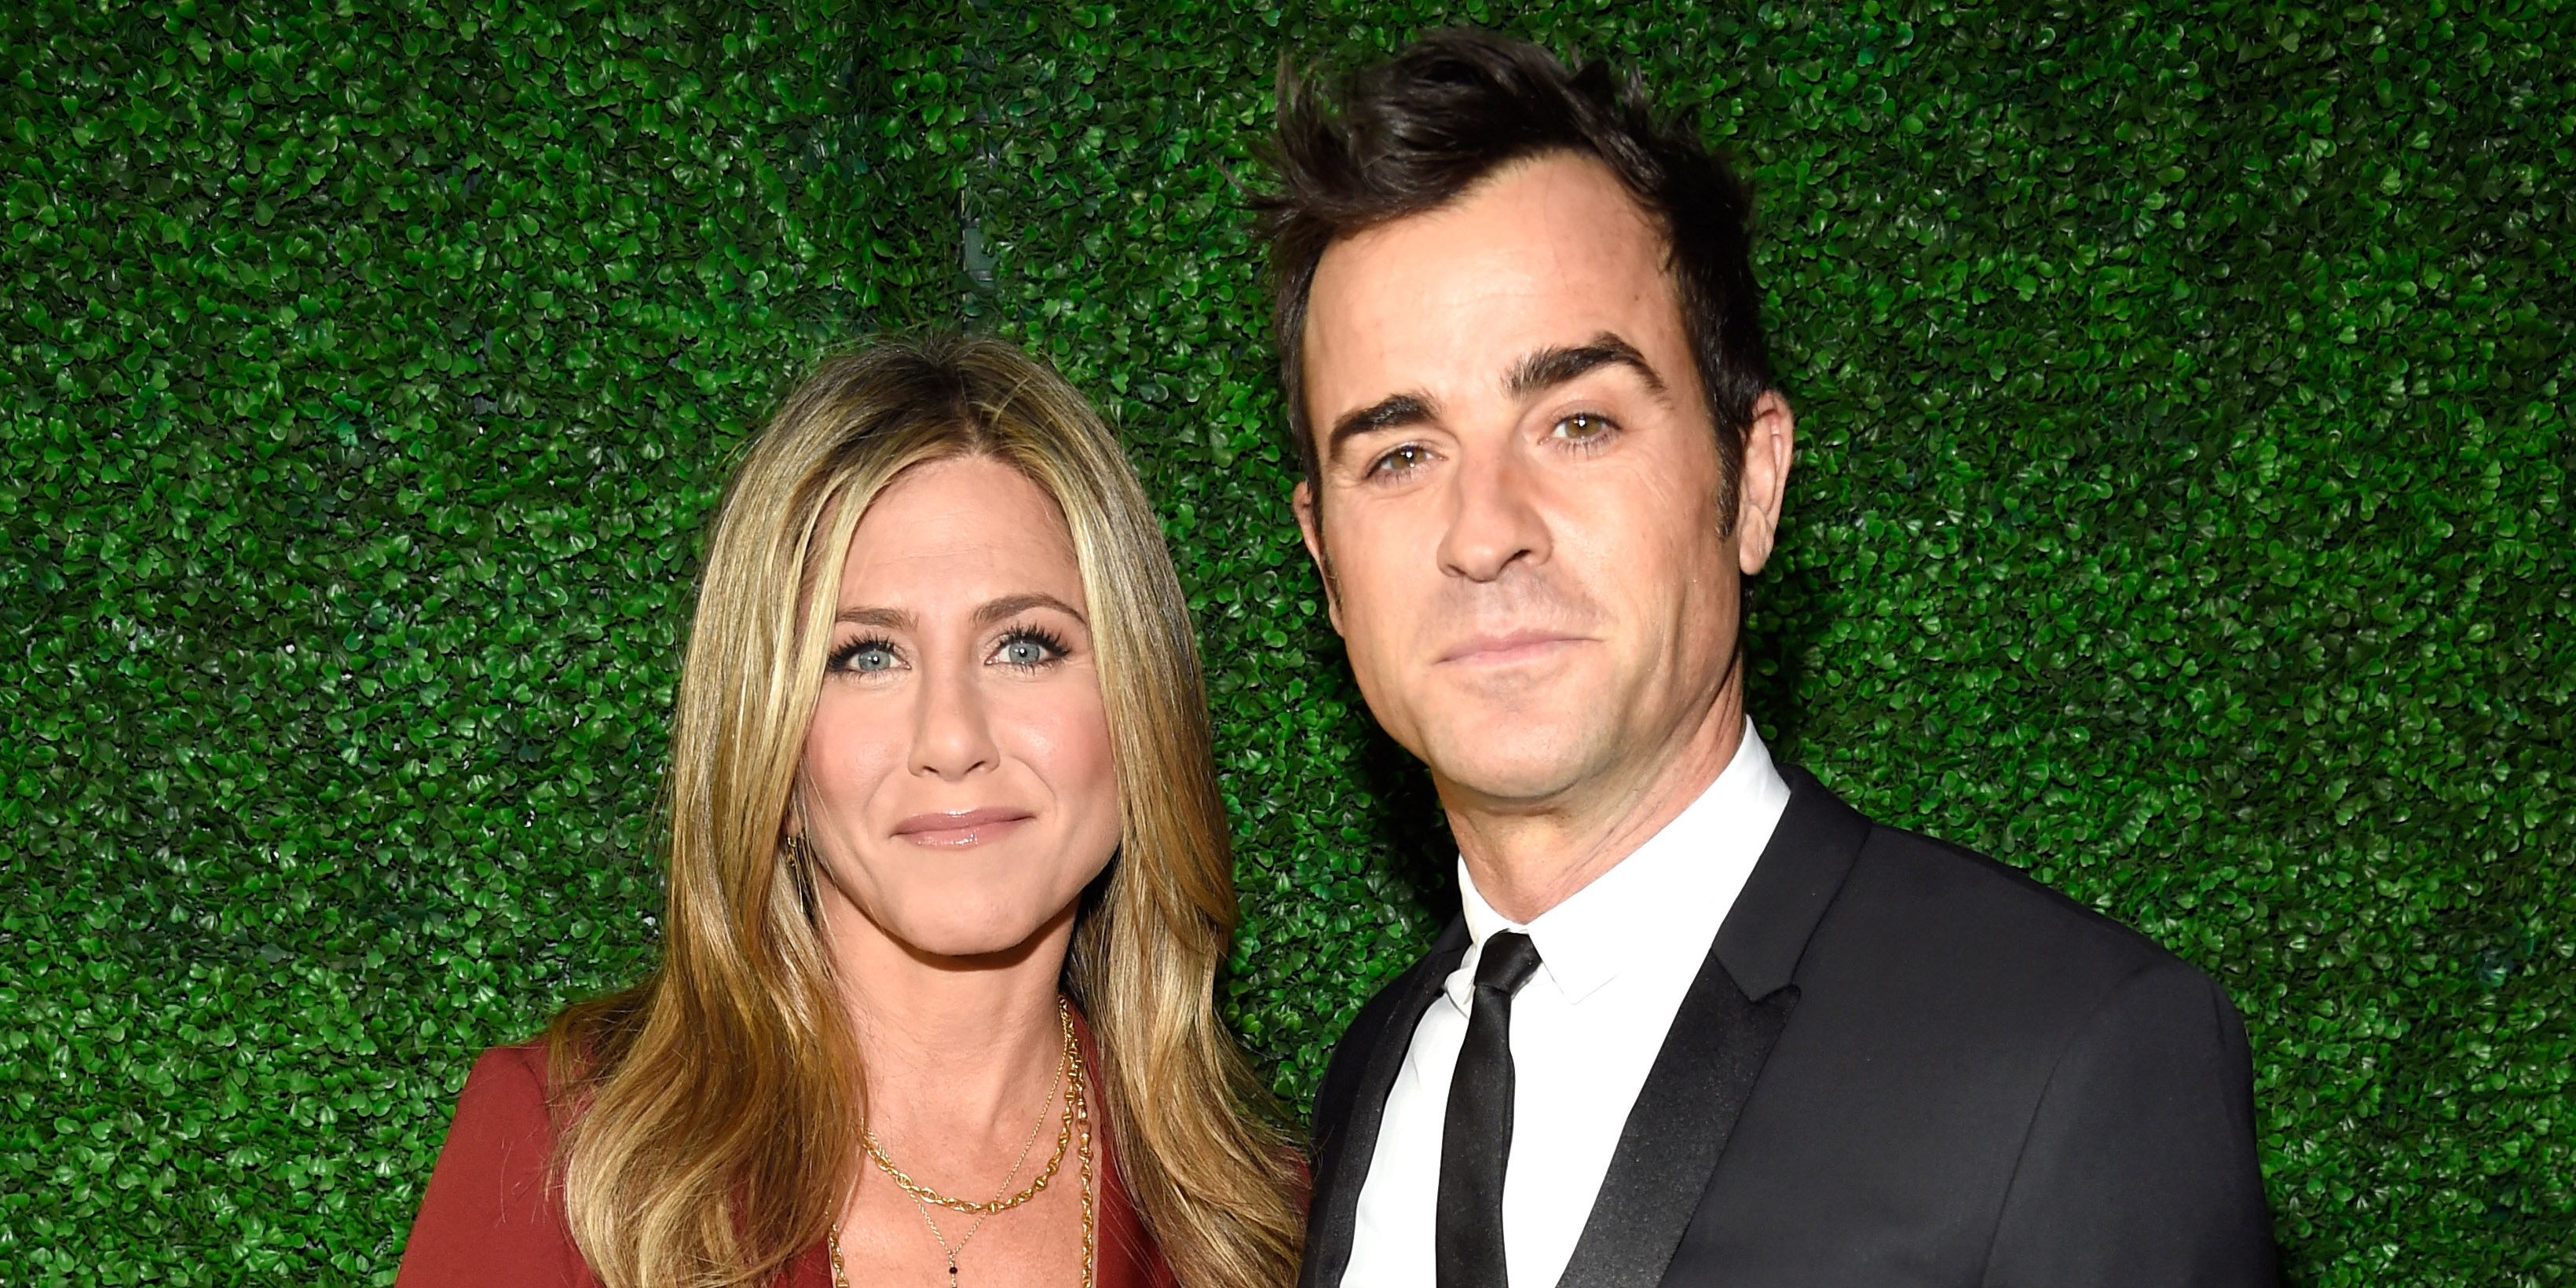 Were Jennifer Aniston and Justin Theroux legally married?